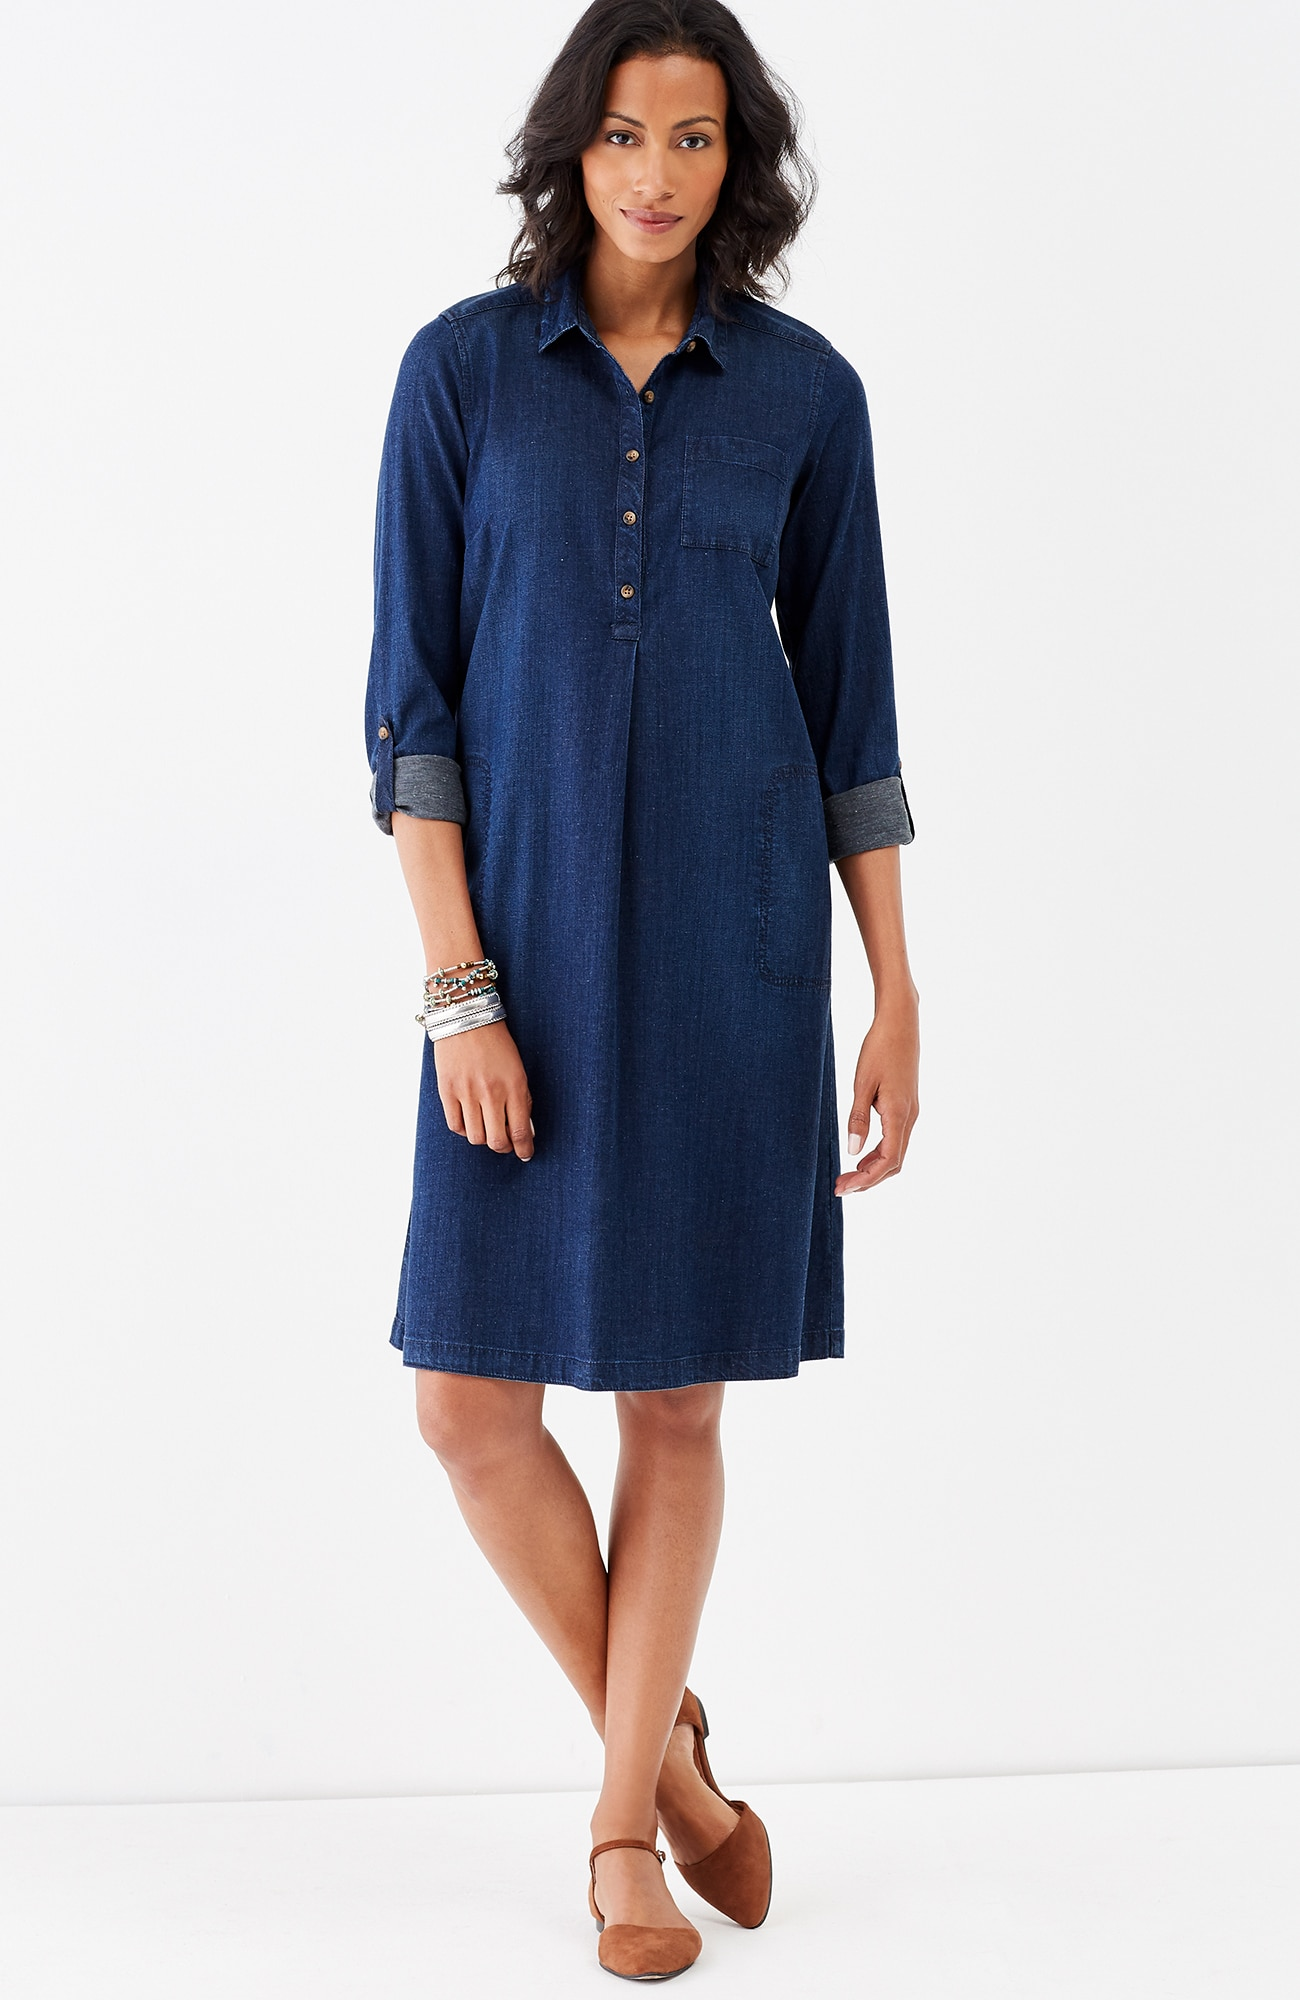 Tencel®-denim shirtdress